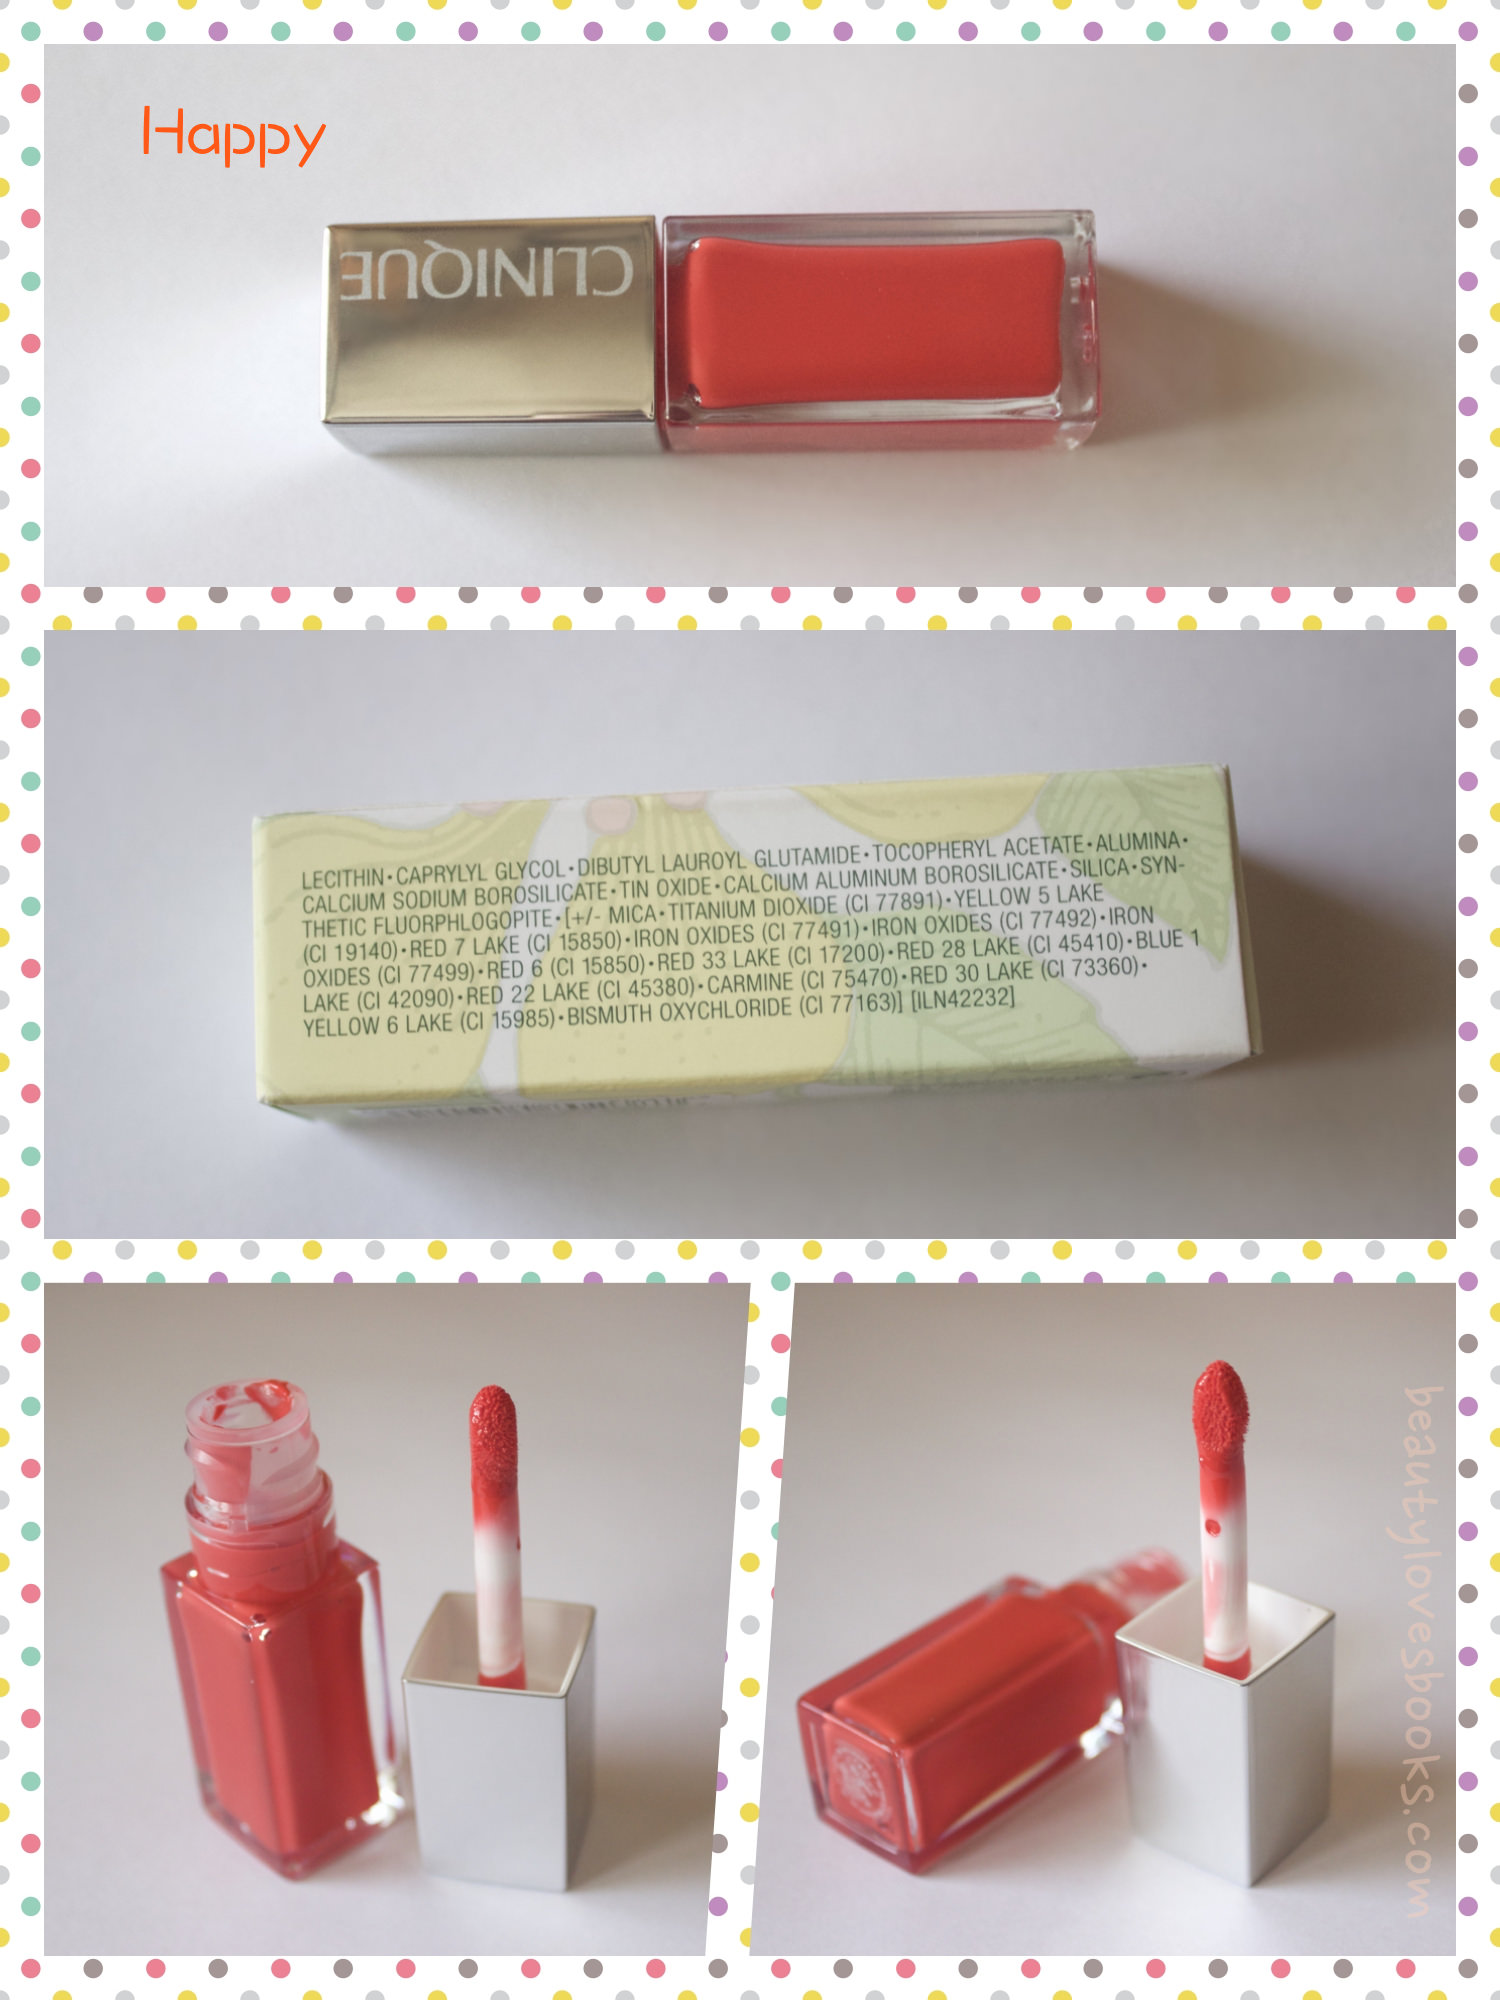 Clinique Pop Lacquer lip colour+base in the shade 03 Happy pop - photos, ingredients